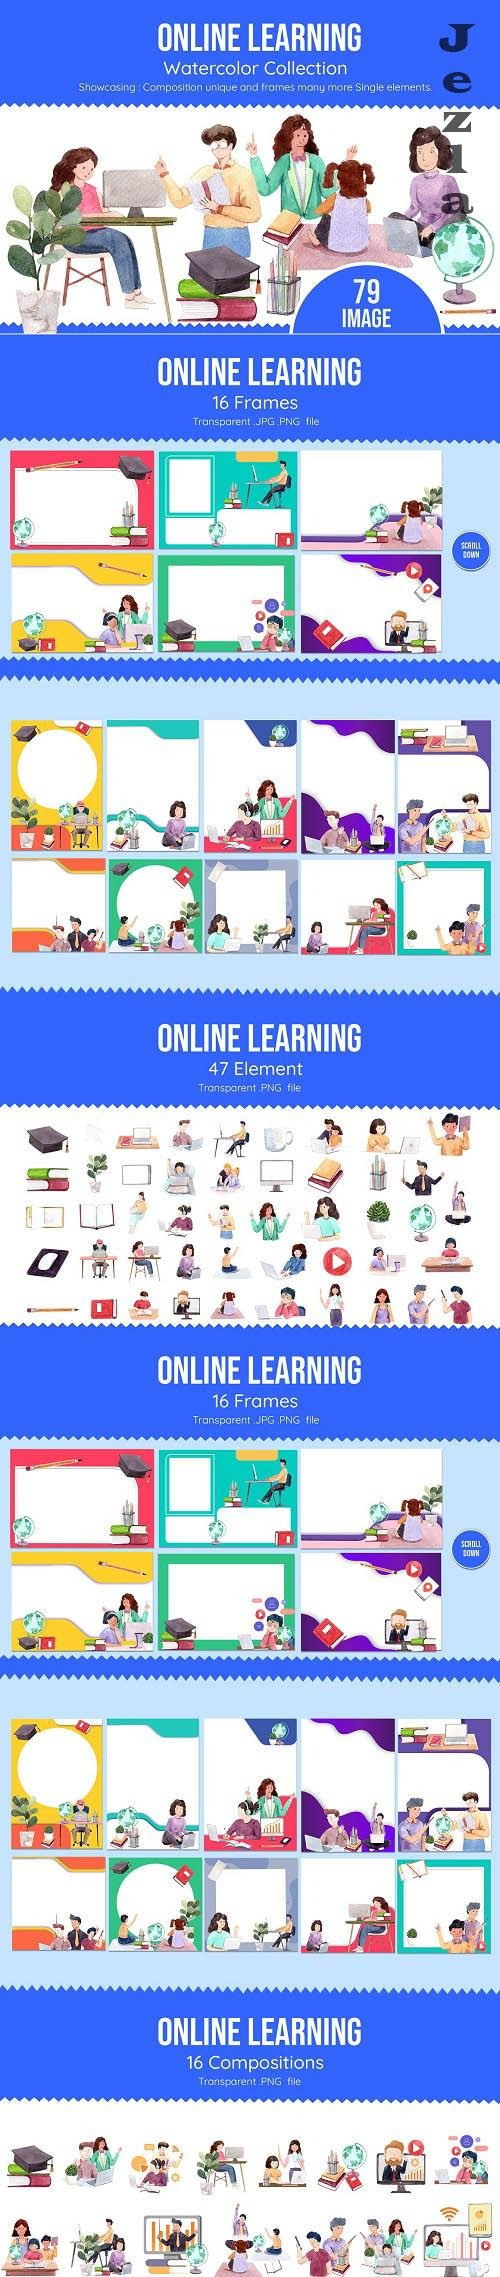 Online Learning at Home Watercolor - 6298058